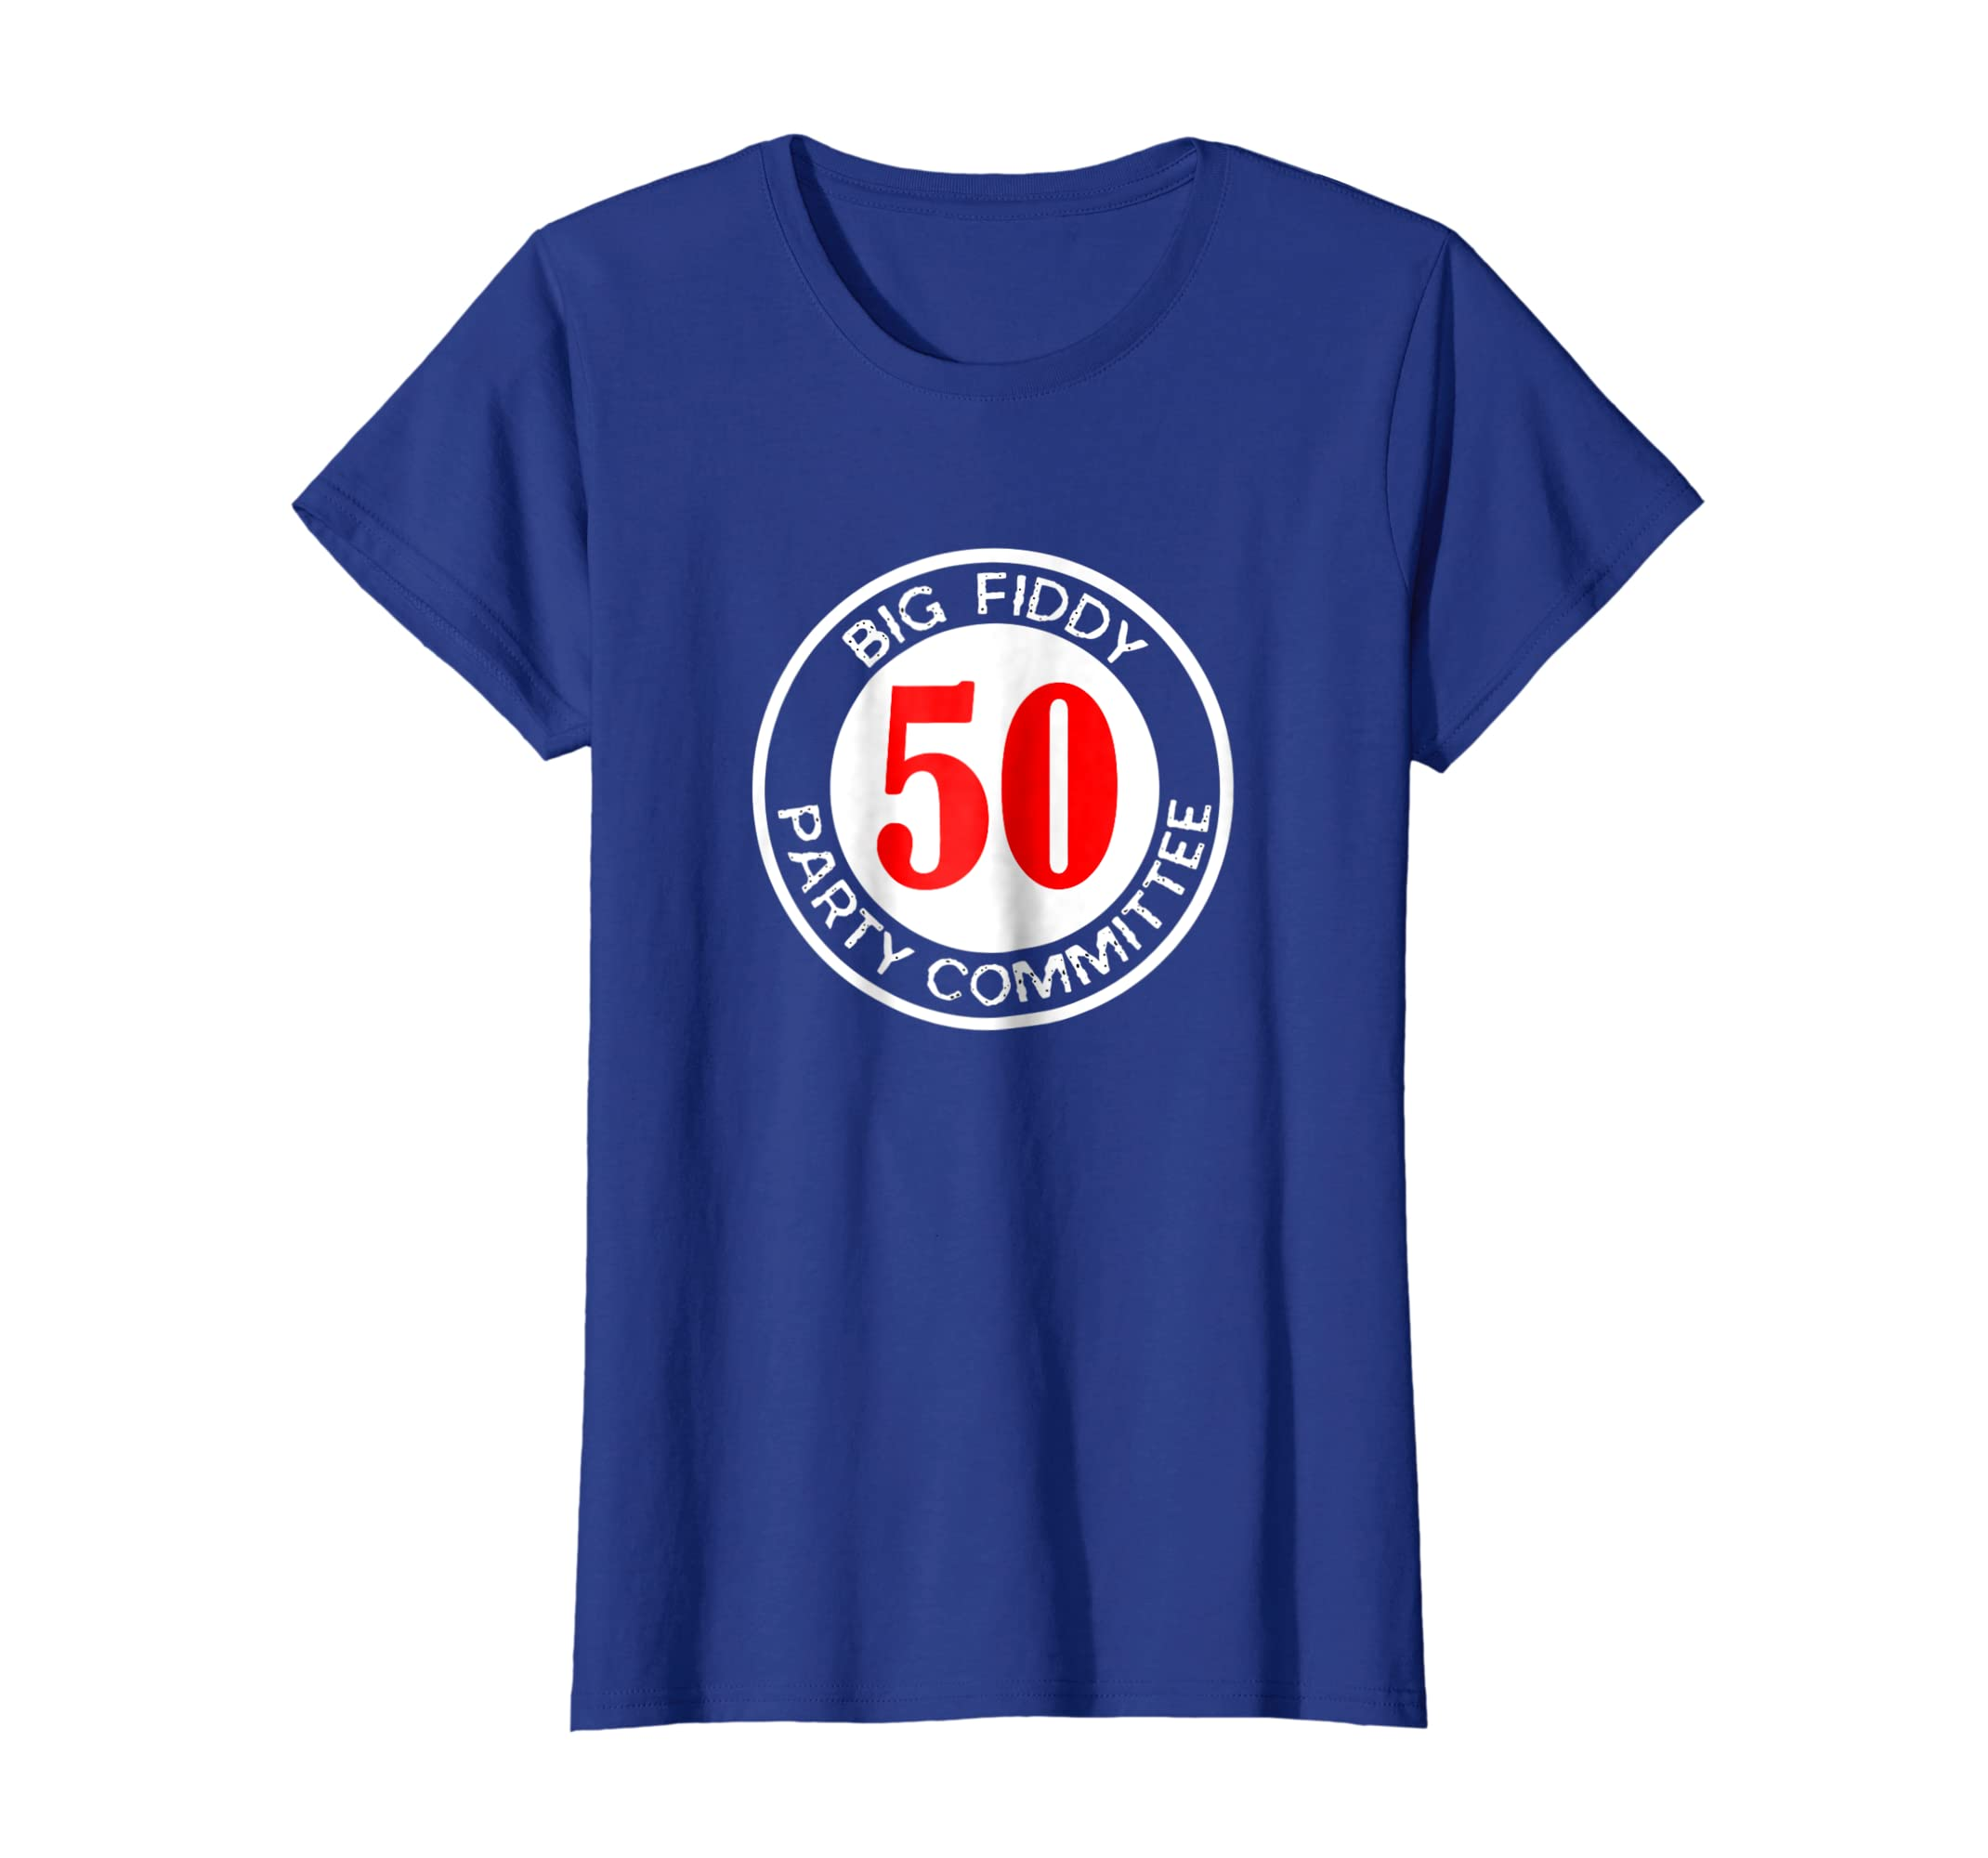 Amazon Big Fiddy Party Committee Funny 50th Fiftieth Birthday Shirt Clothing